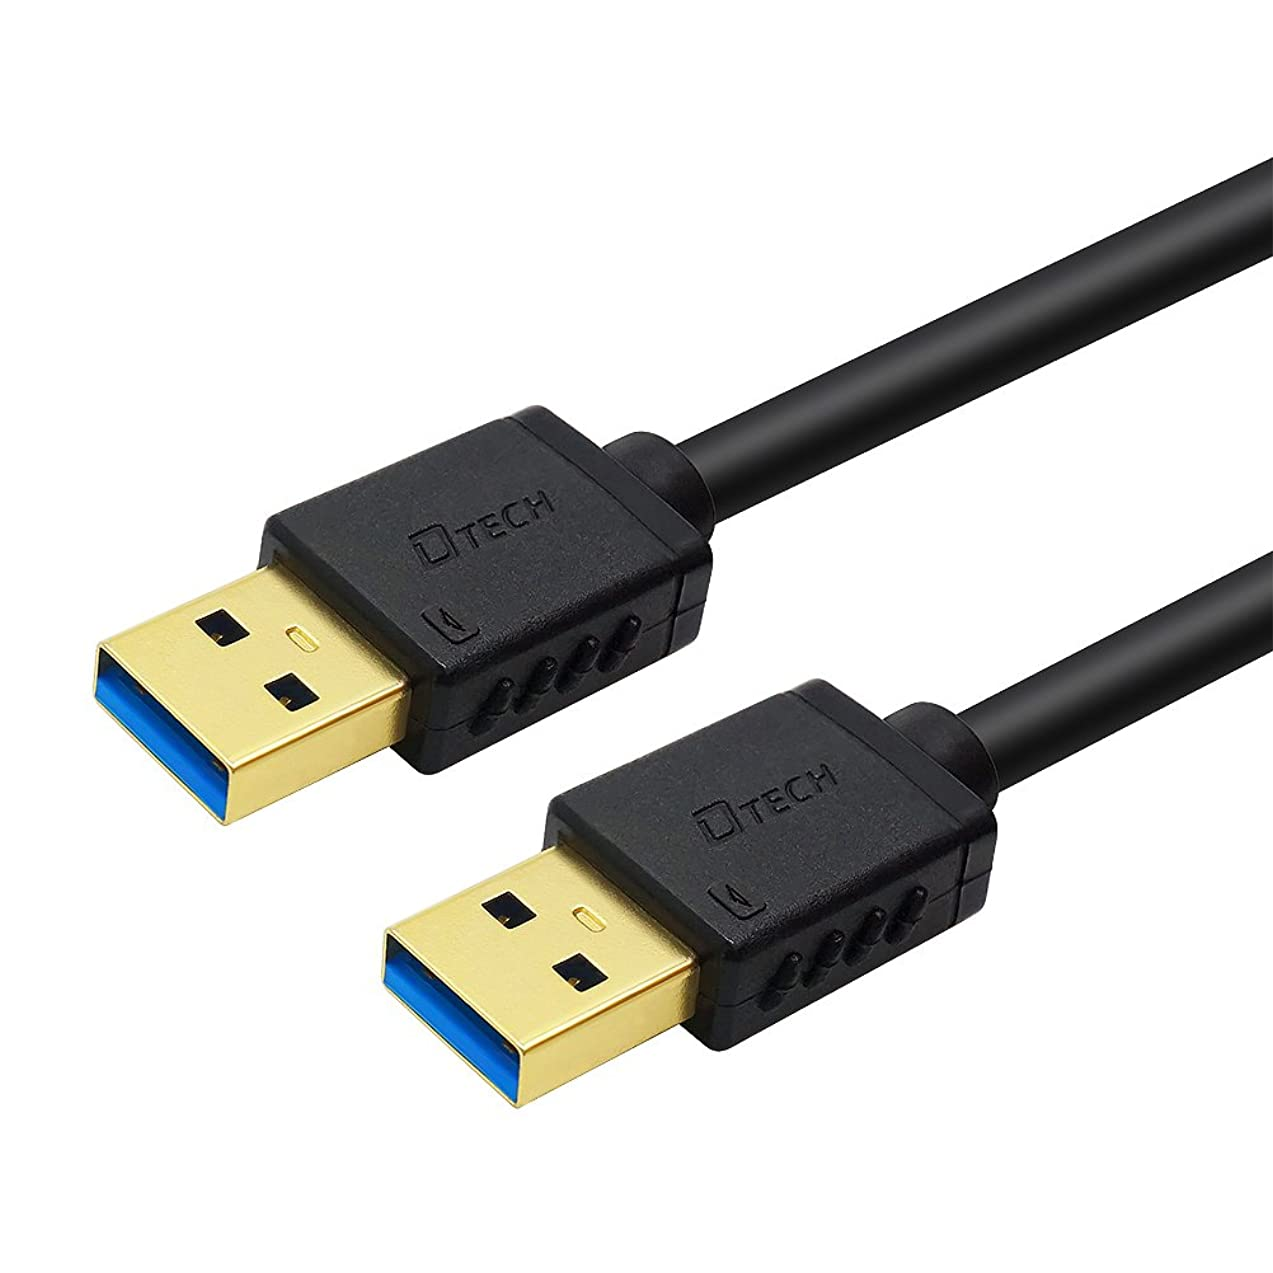 DTECH 3 ft USB 3.0 Type A to A Cable Male to Male High Speed Data Charging Cord in Black xkwijyuw255